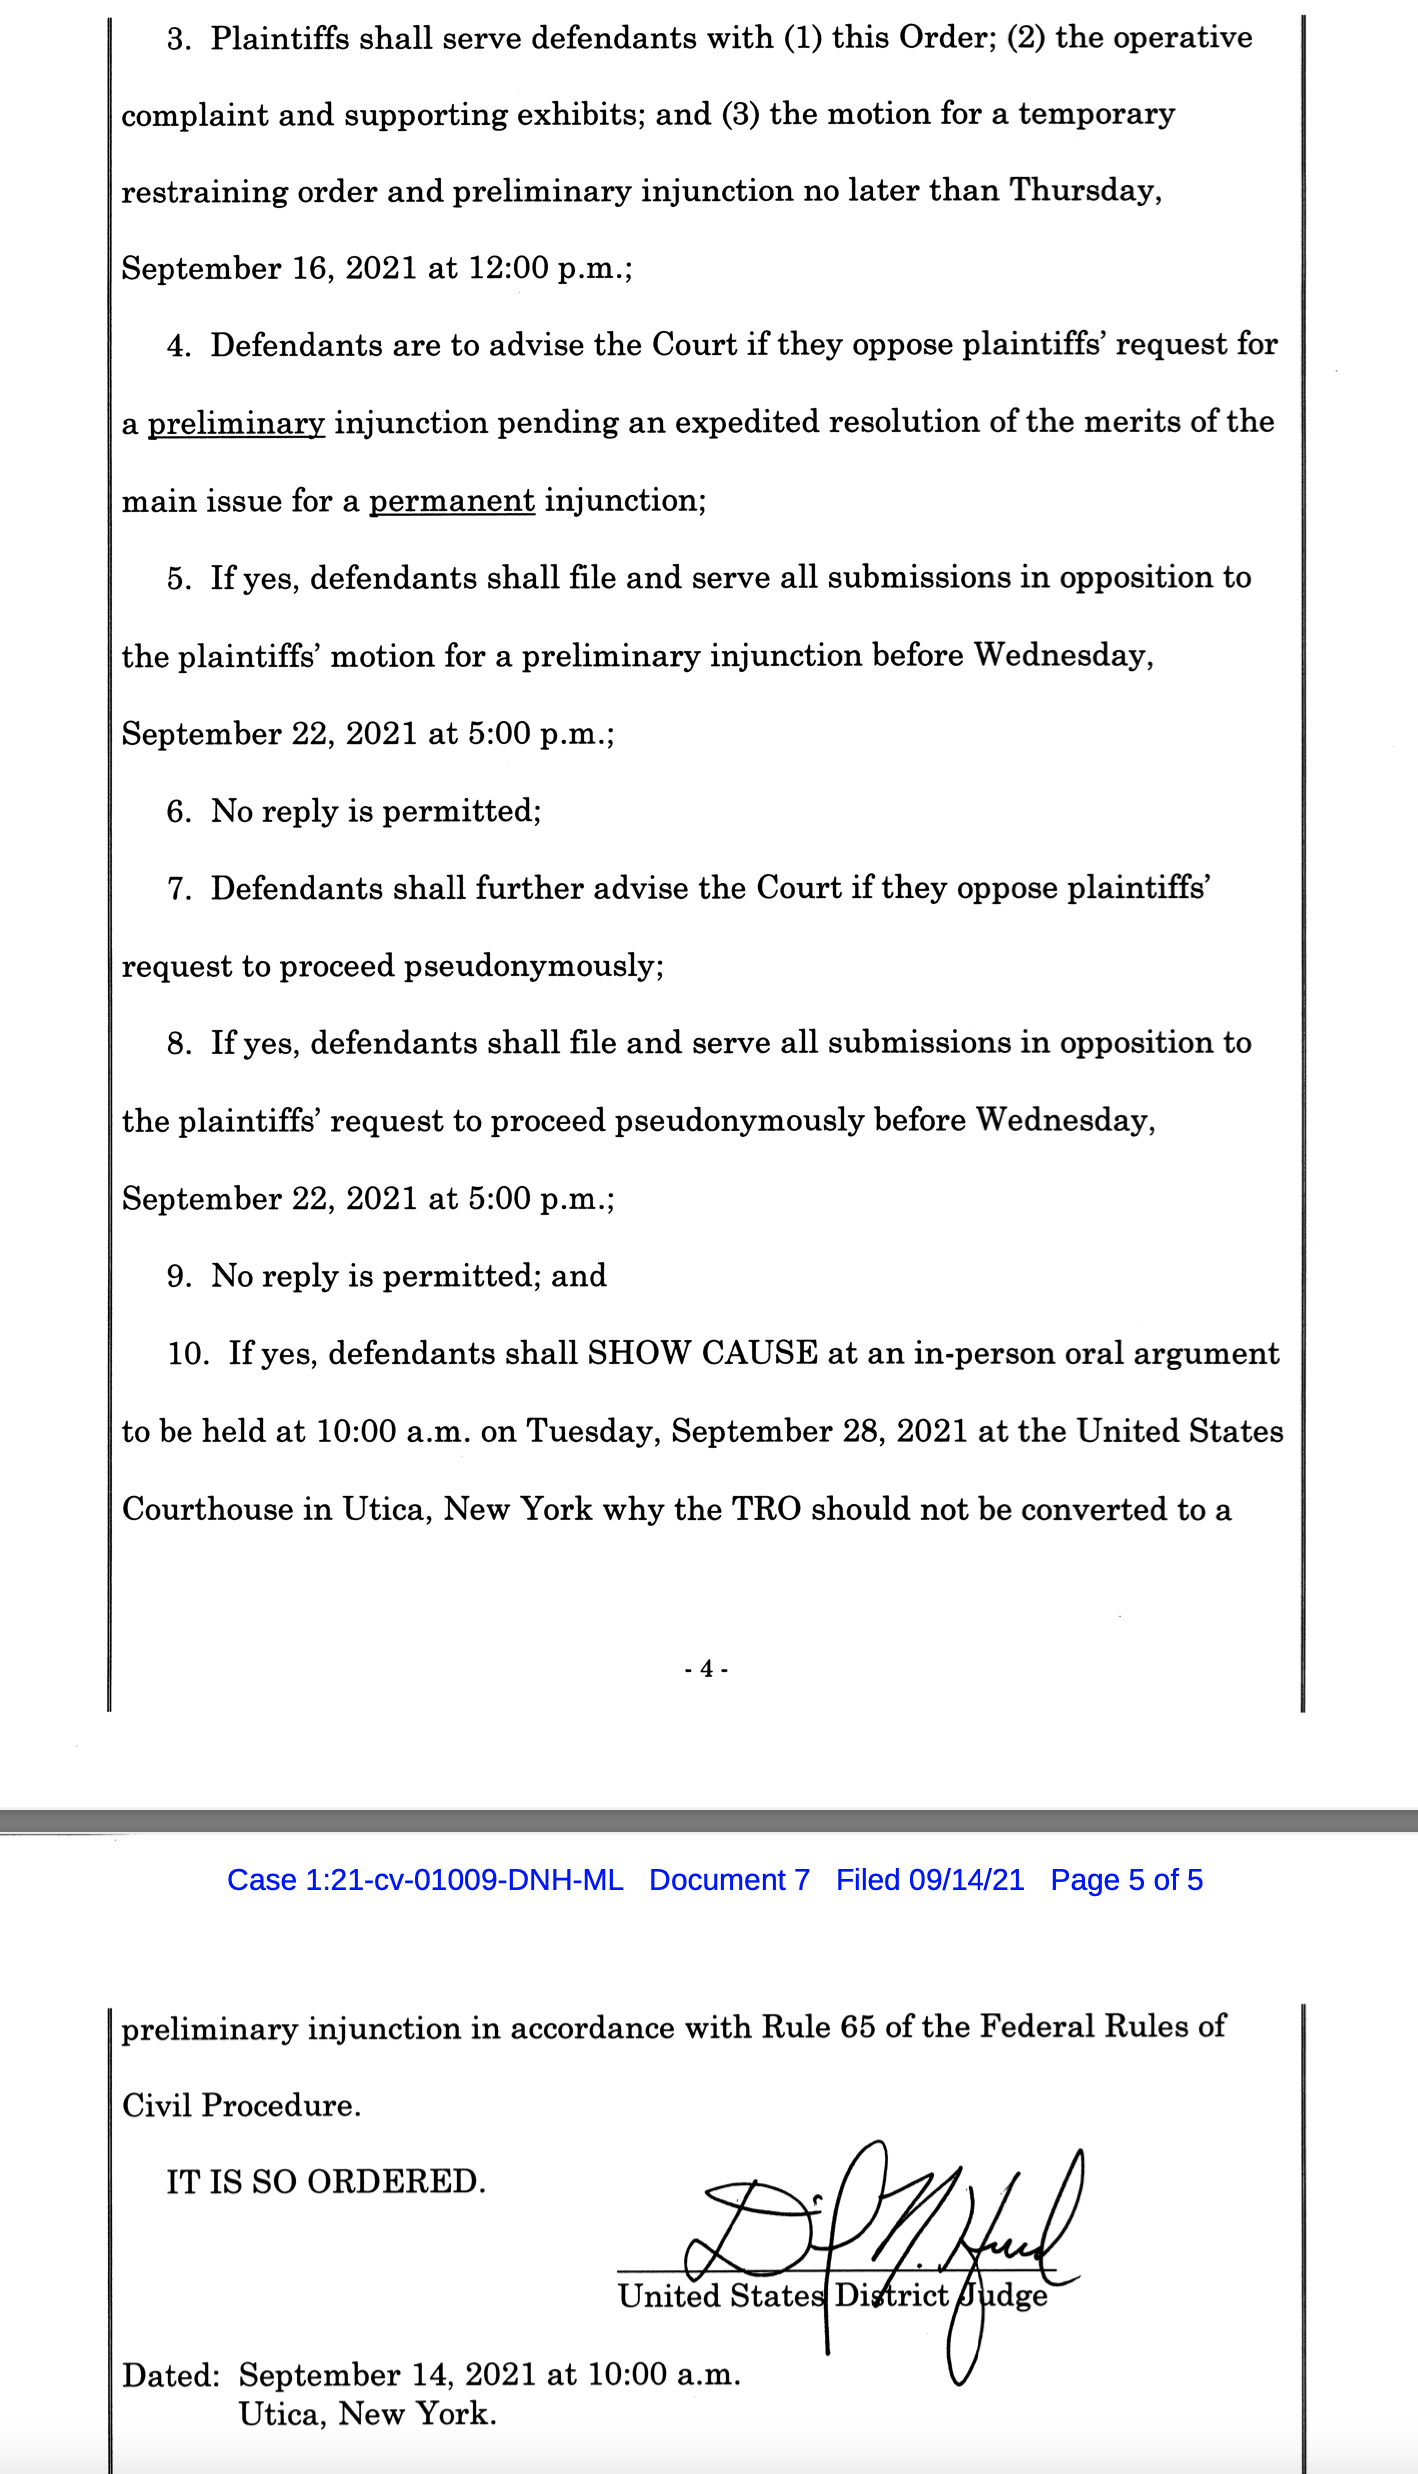 Image of temporary restraining order text